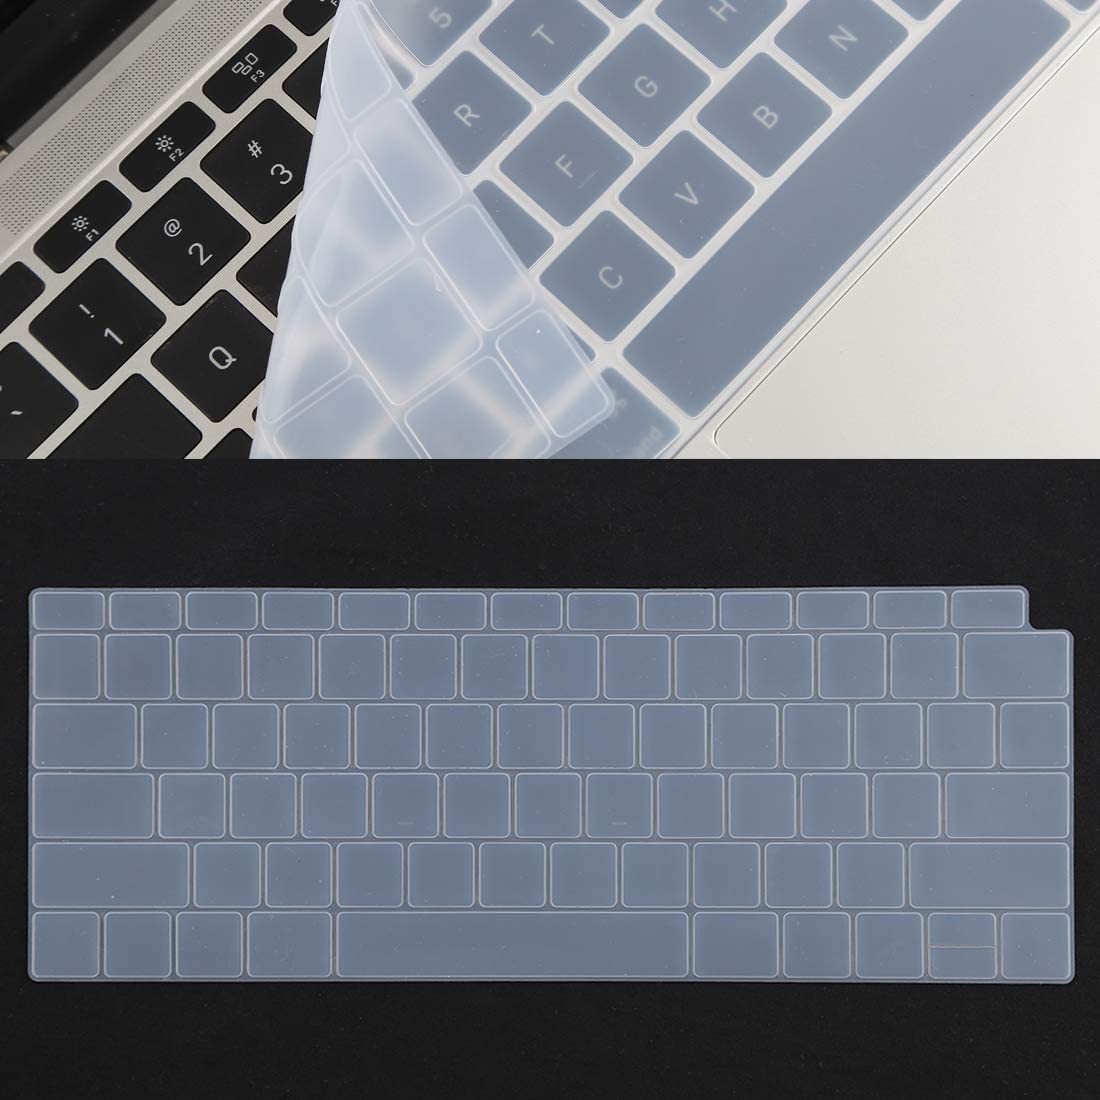 Timemall 13.3 inch A1502 Protective Film Keyboard Protector Silica Gel Film for MacBook Air 13 Anti-Scratch: Hard Coating in The Surface Black not Easily Scratched. Color : Transparent A1932